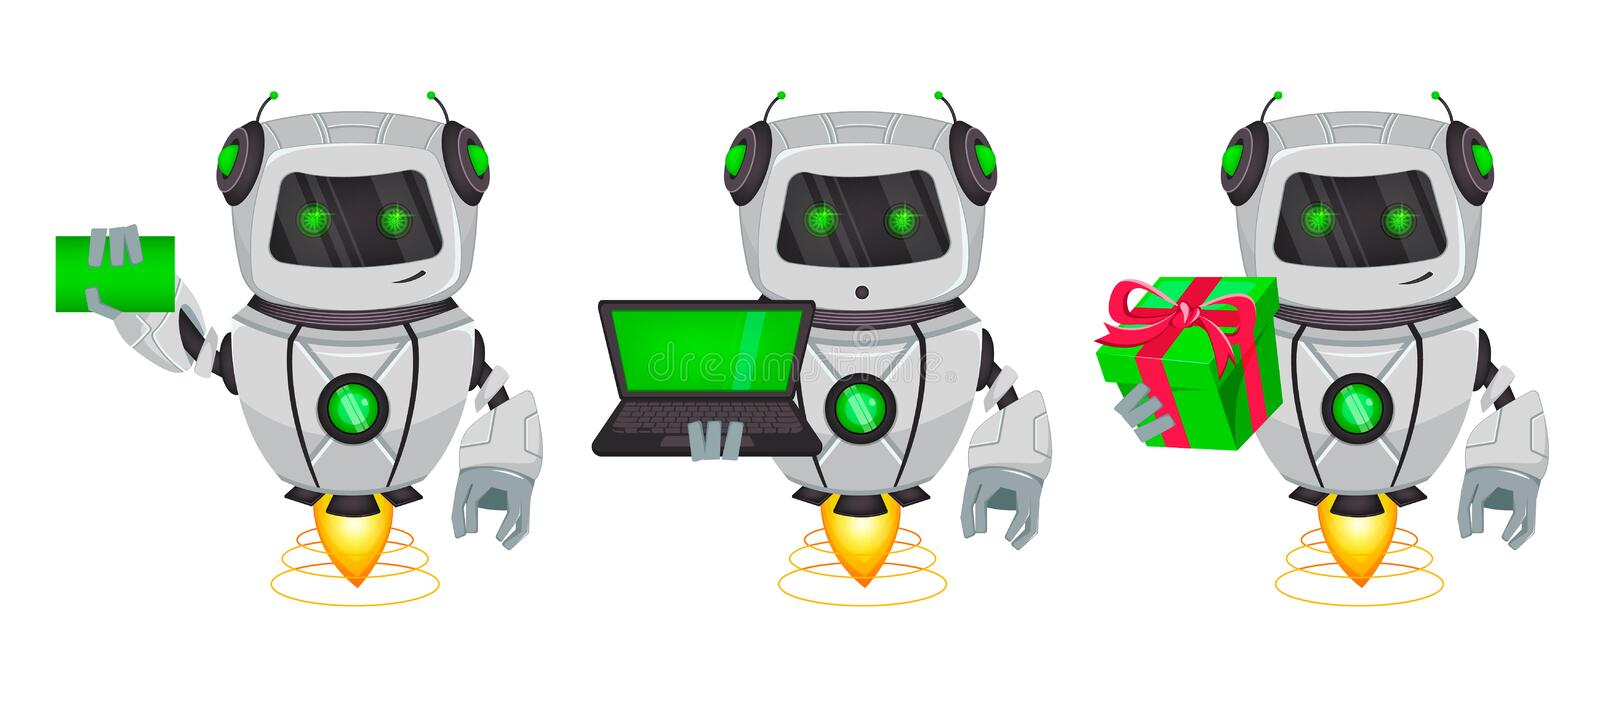 Robot with artificial intelligence, bot, set of three poses. Funny cartoon character holds blank business card, holds laptop and vector illustration